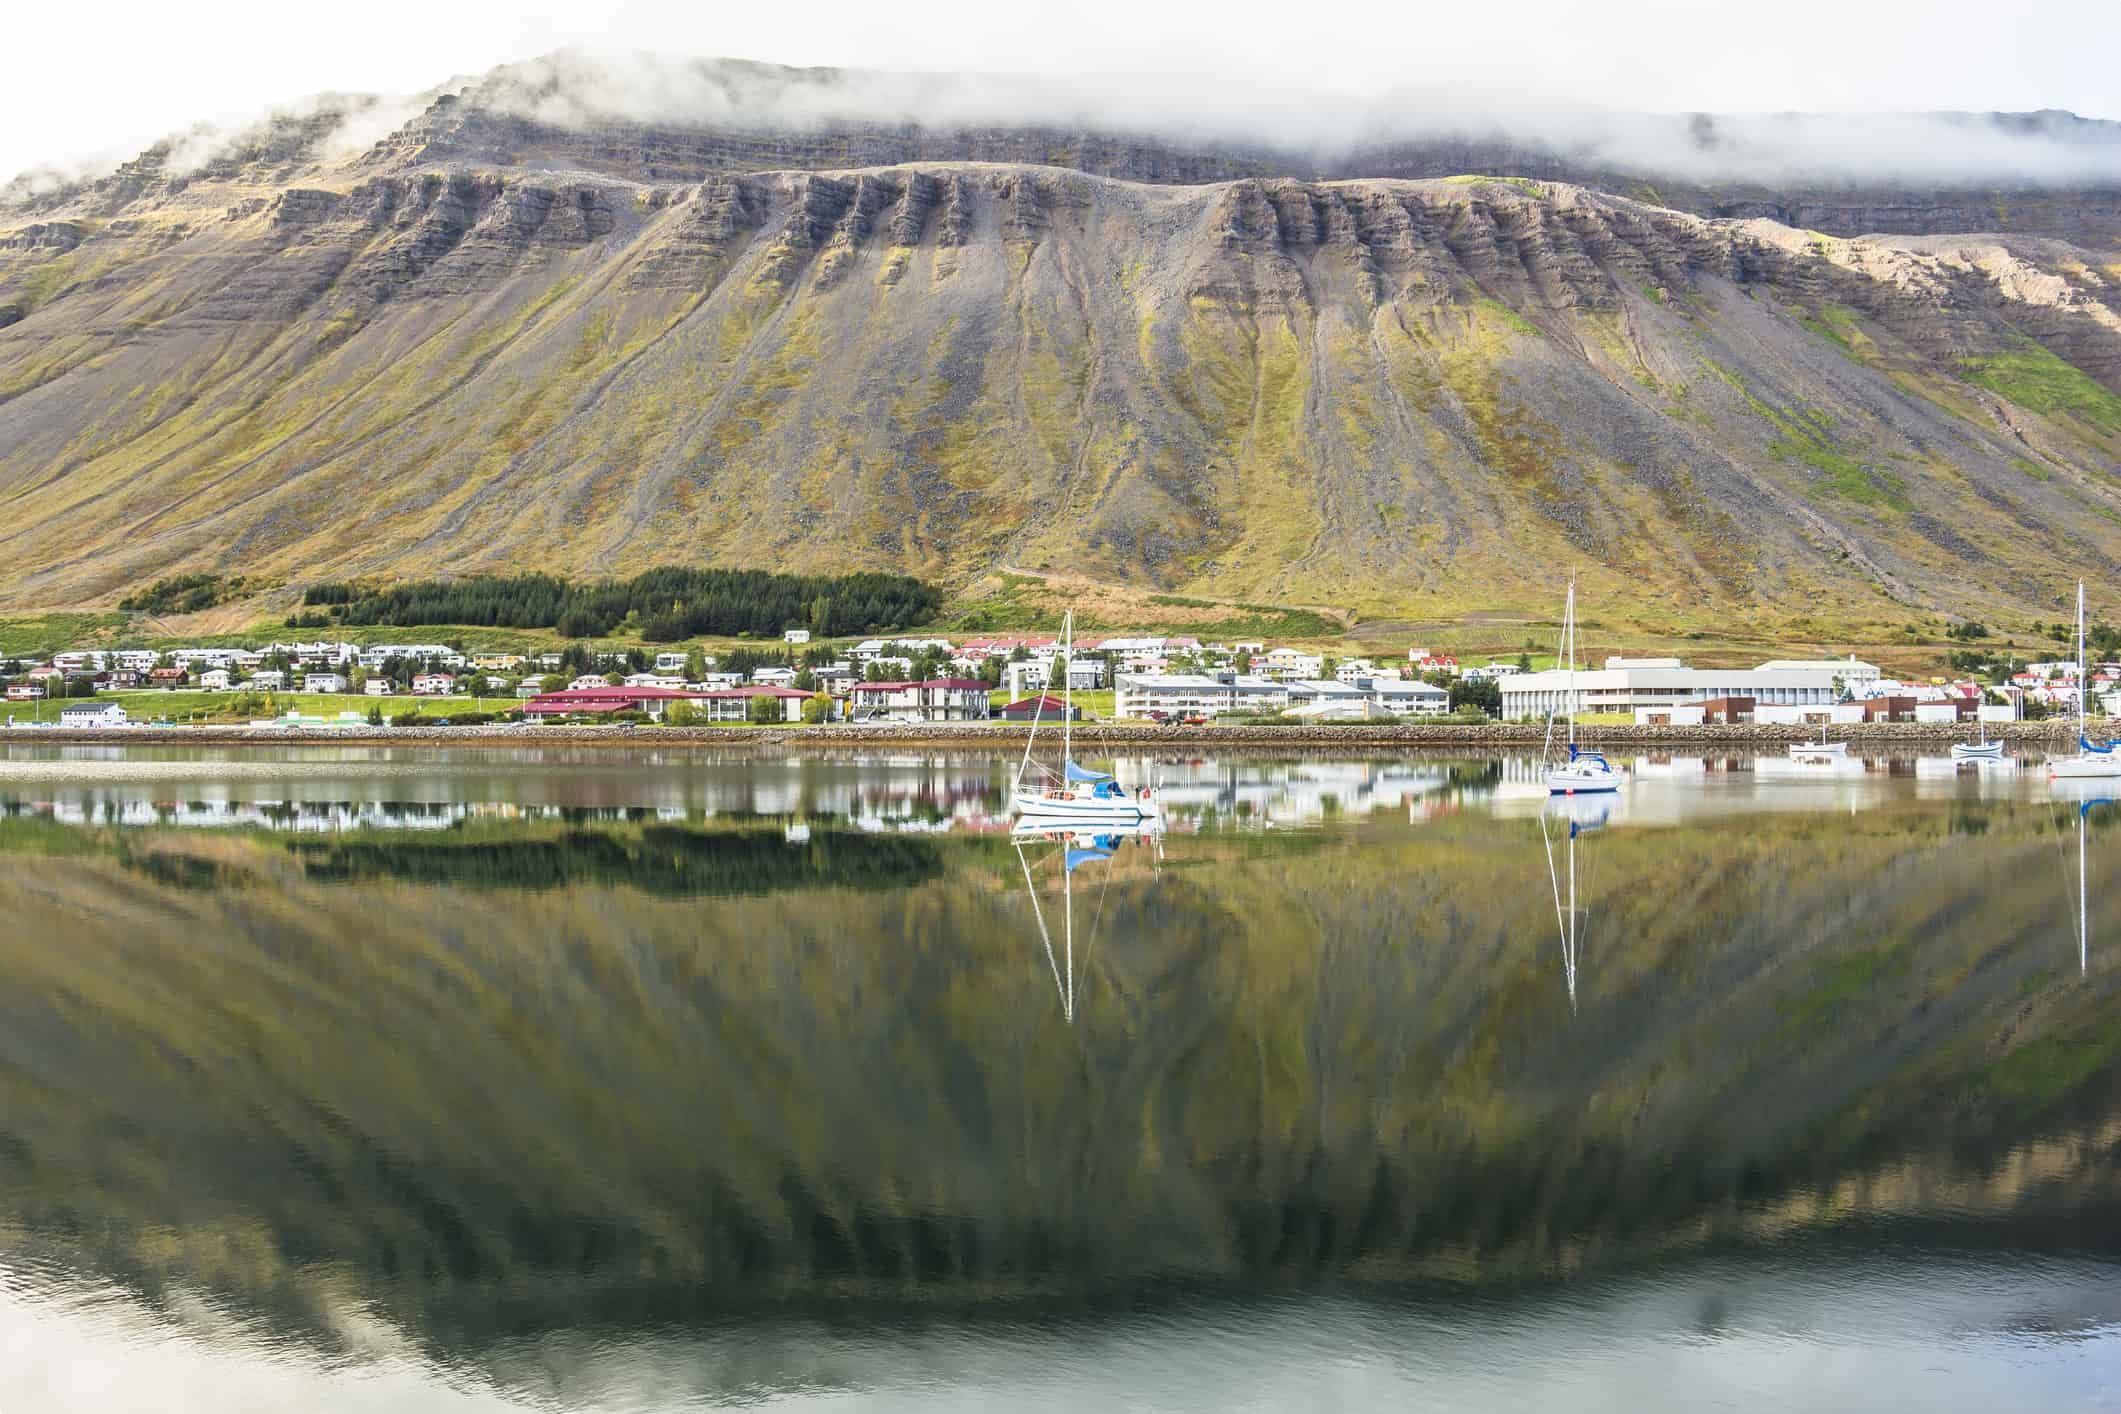 Fjord reflection on the water at Isafjordur, Iceland